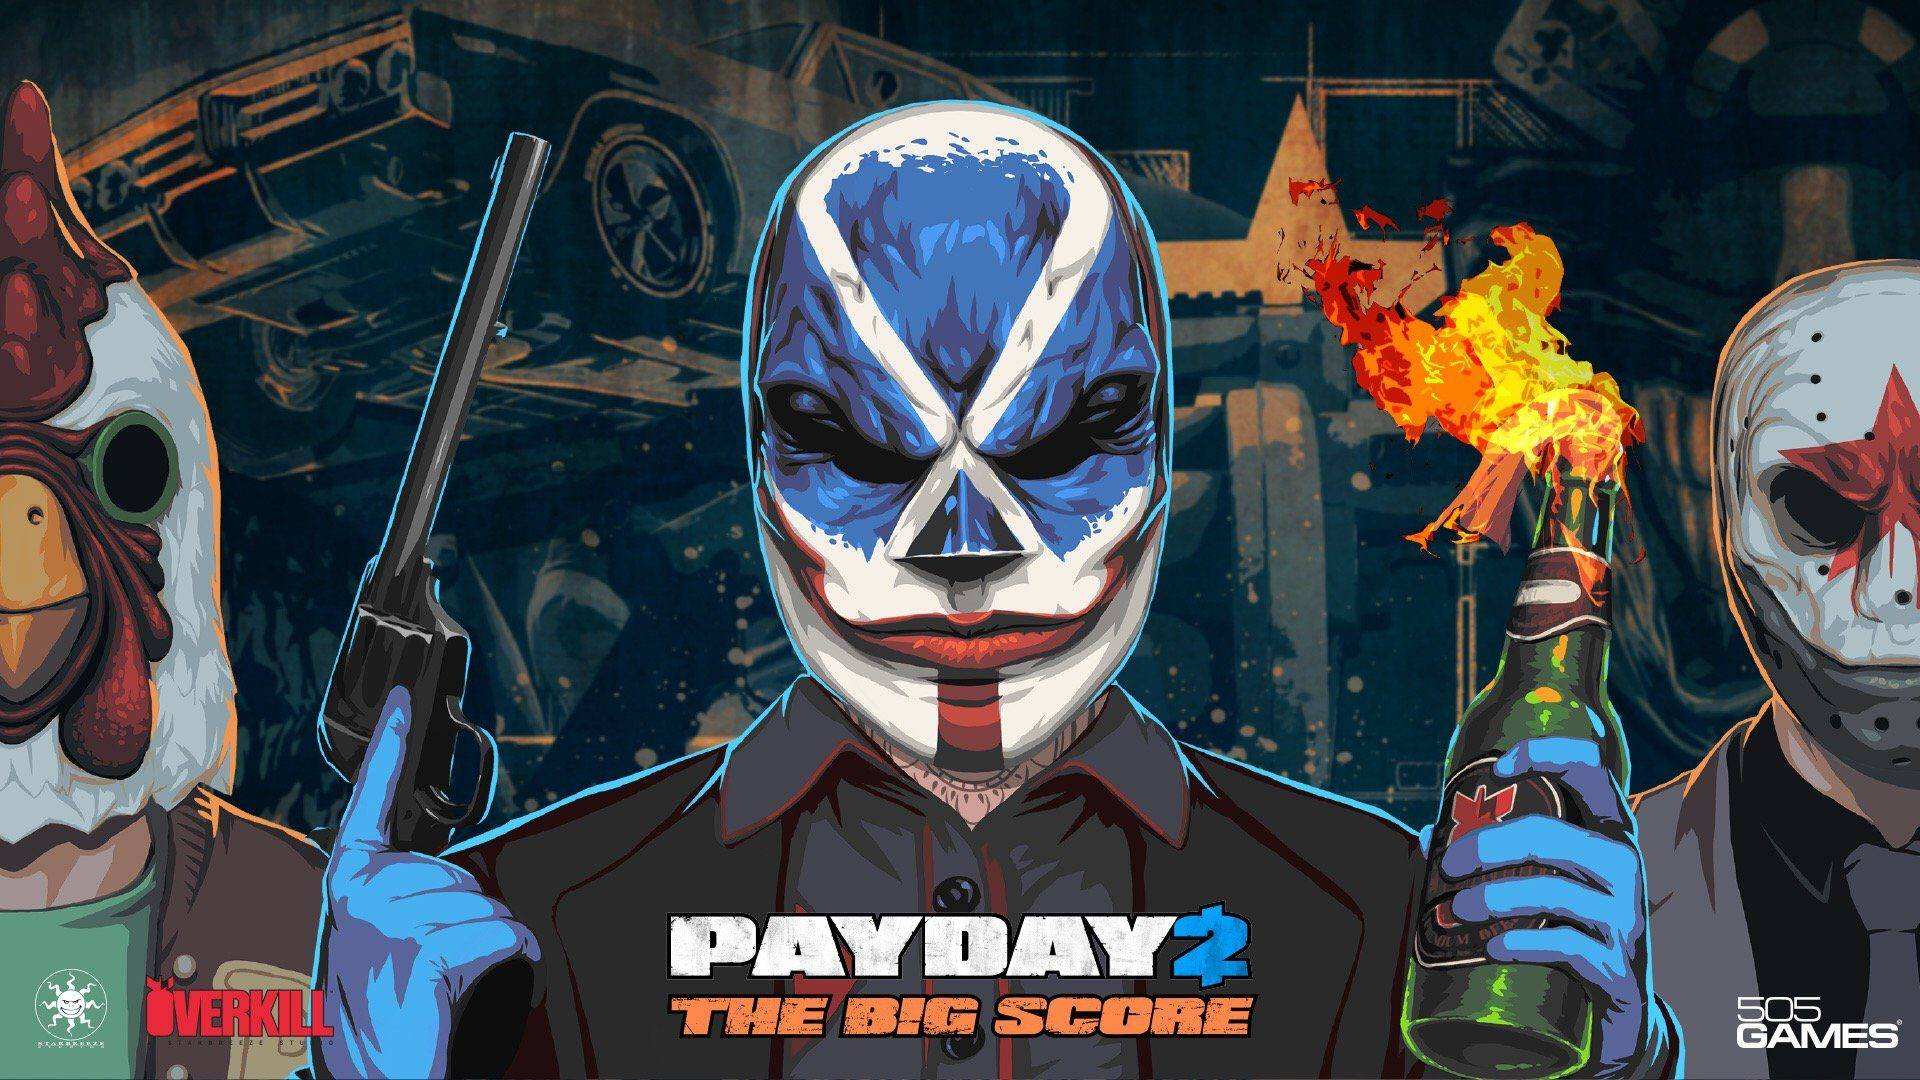 Payday 2 Matchmaking-Probleme Dating sims on steam